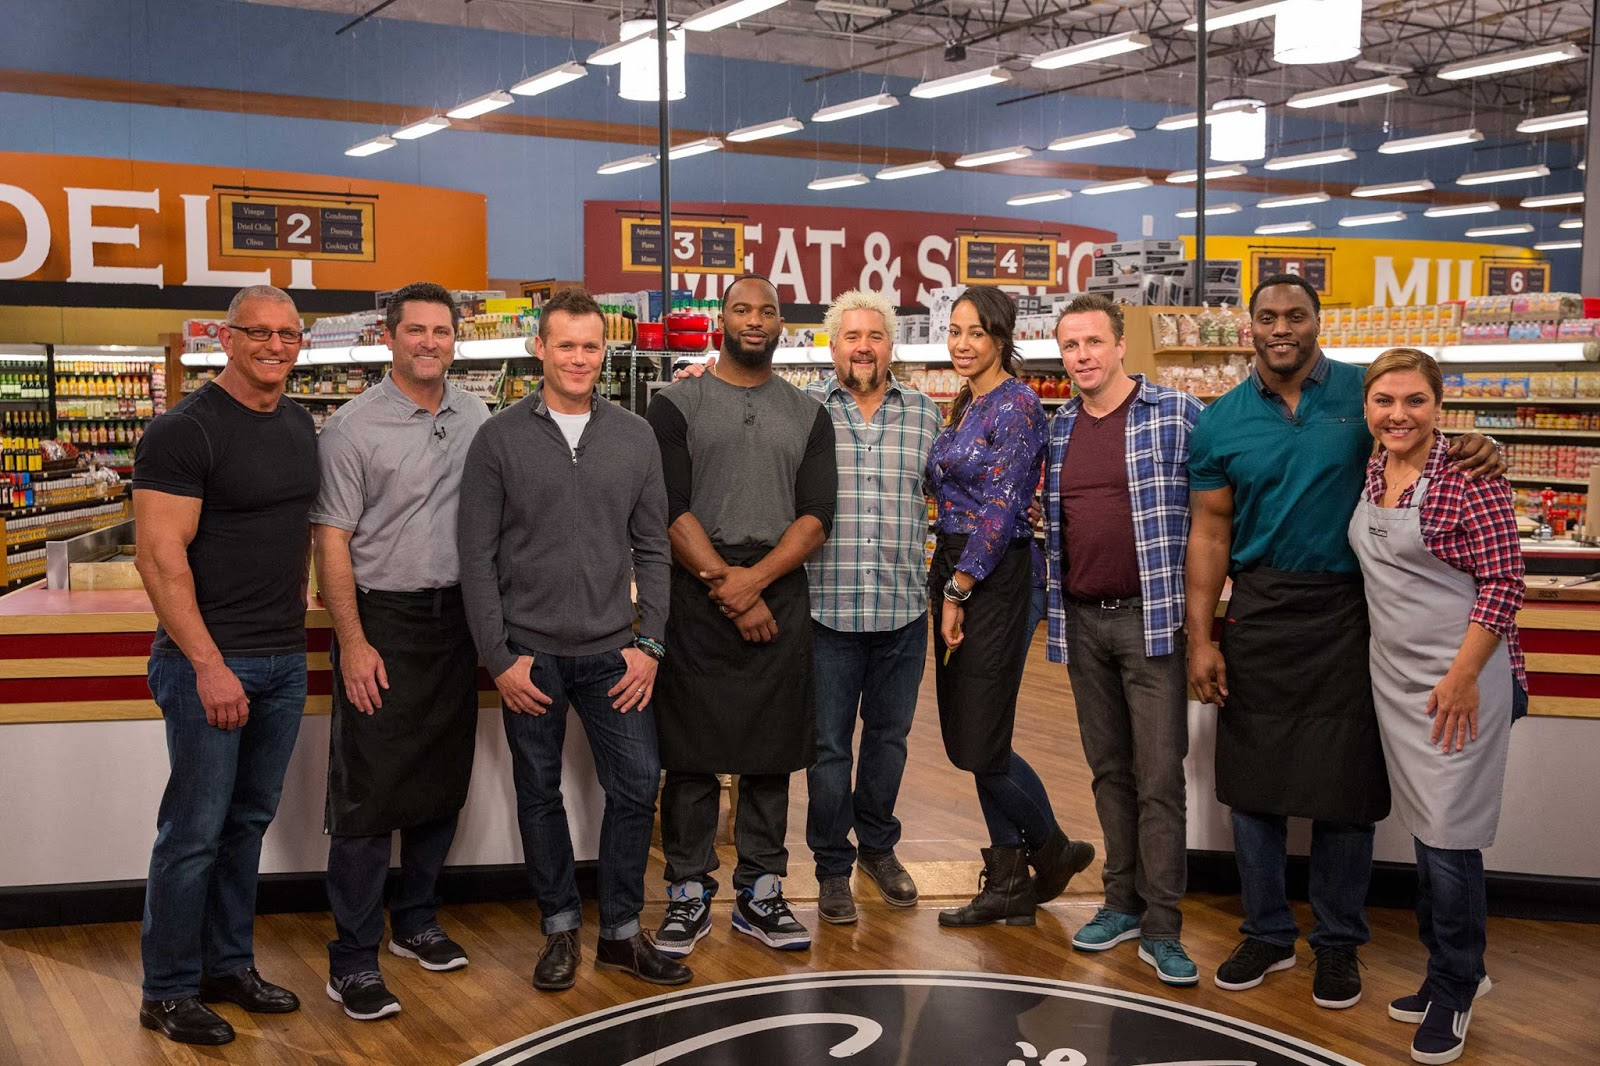 Food Network All Star Chef Show